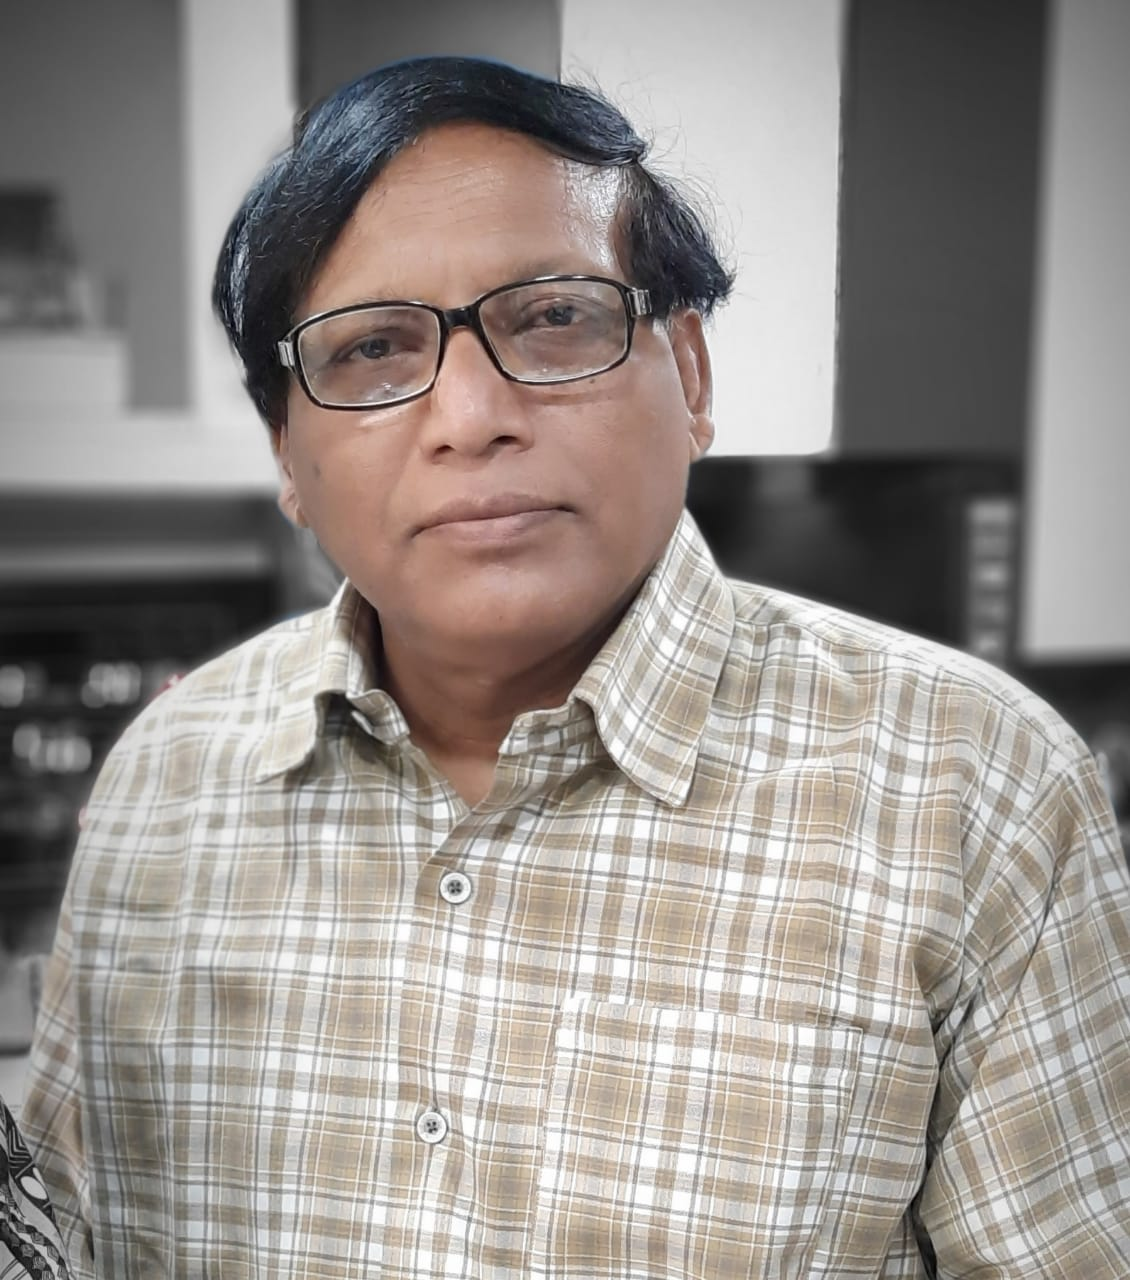 Dr. SAILEN DEBNATH